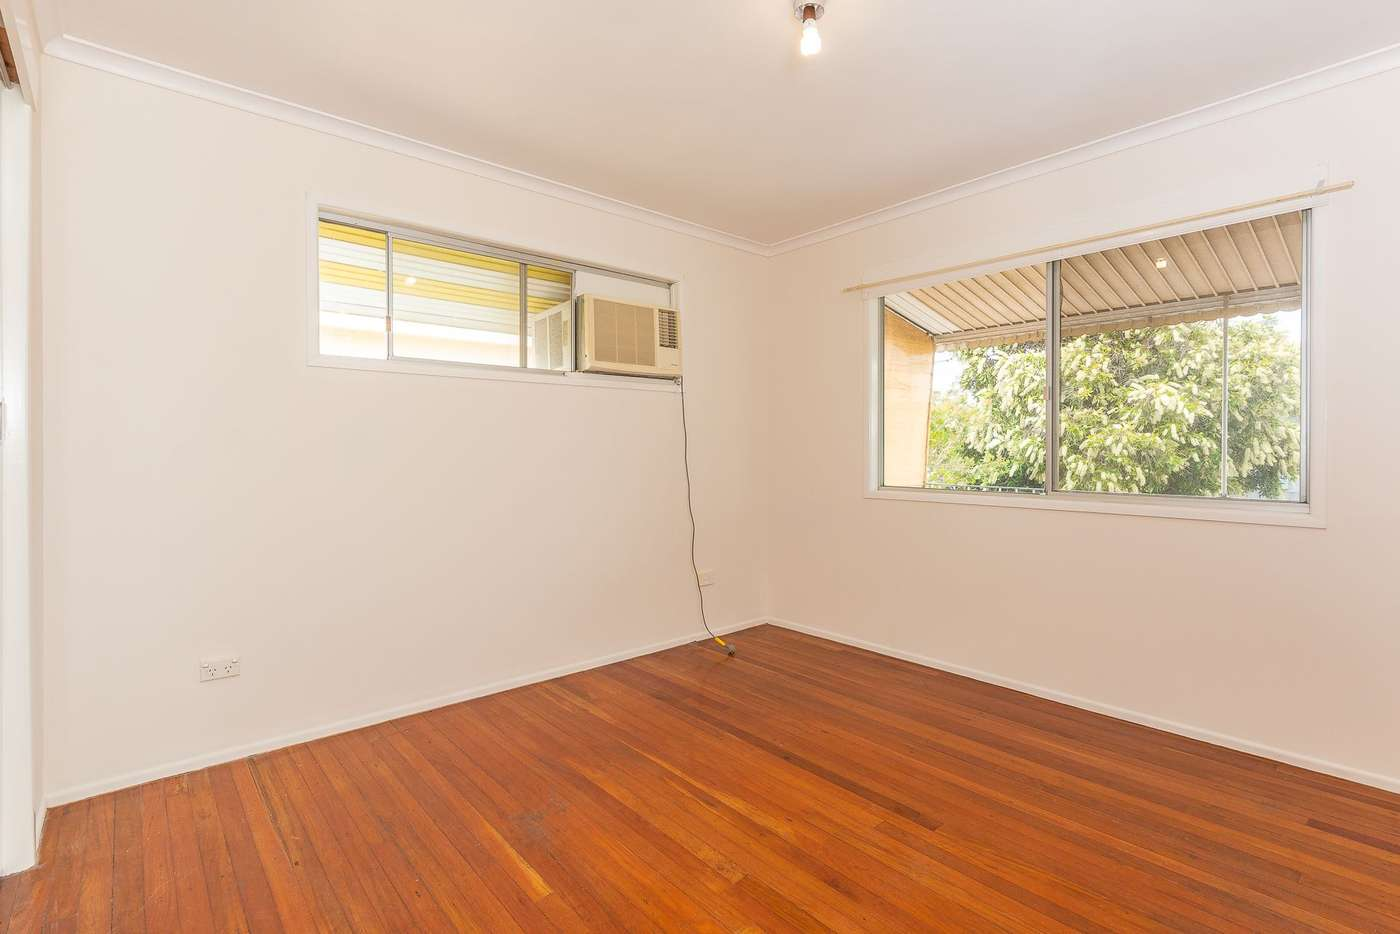 Sixth view of Homely house listing, 28 Mcpherson Street, Kippa-ring QLD 4021